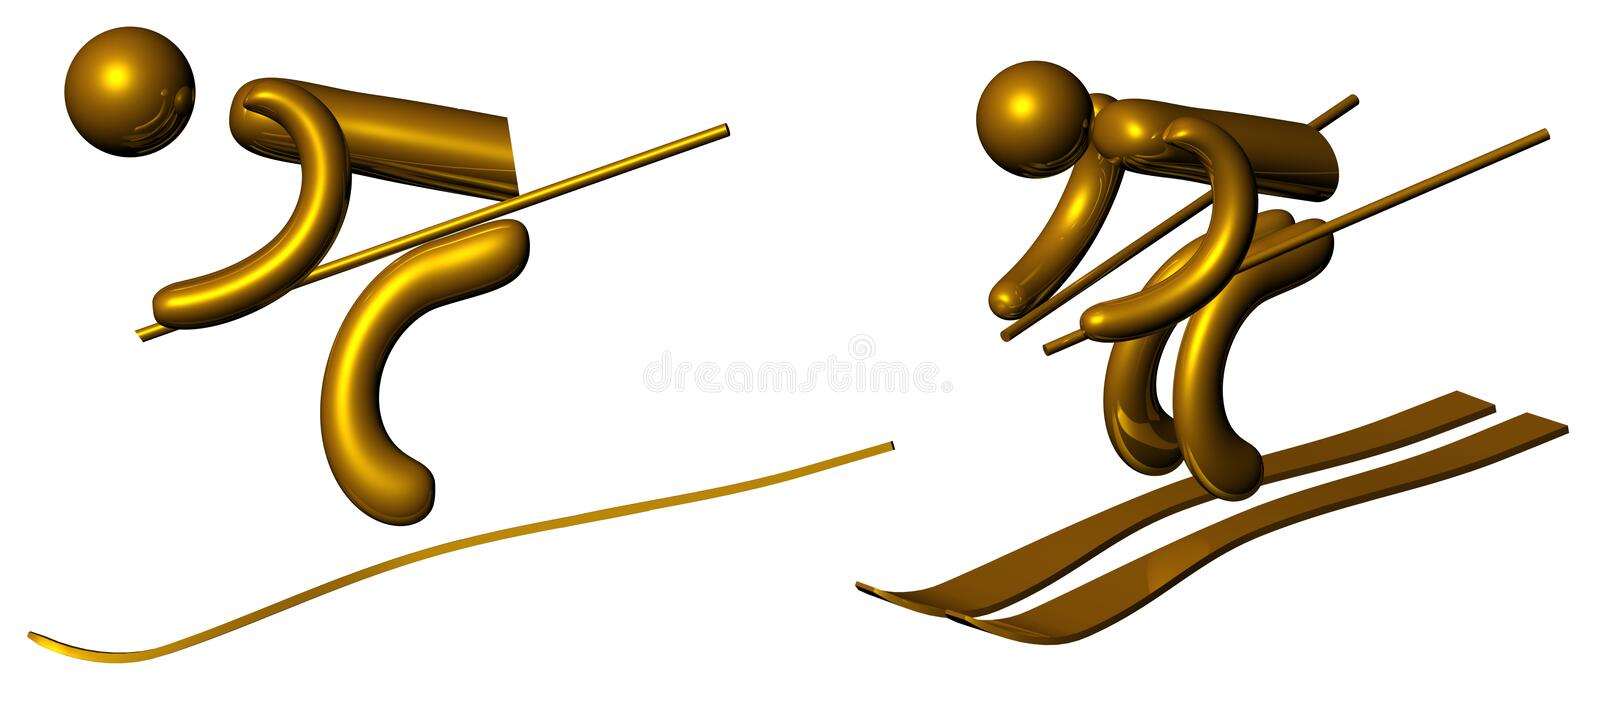 Download Golden skier stock illustration. Image of metal, illustration - 11168127